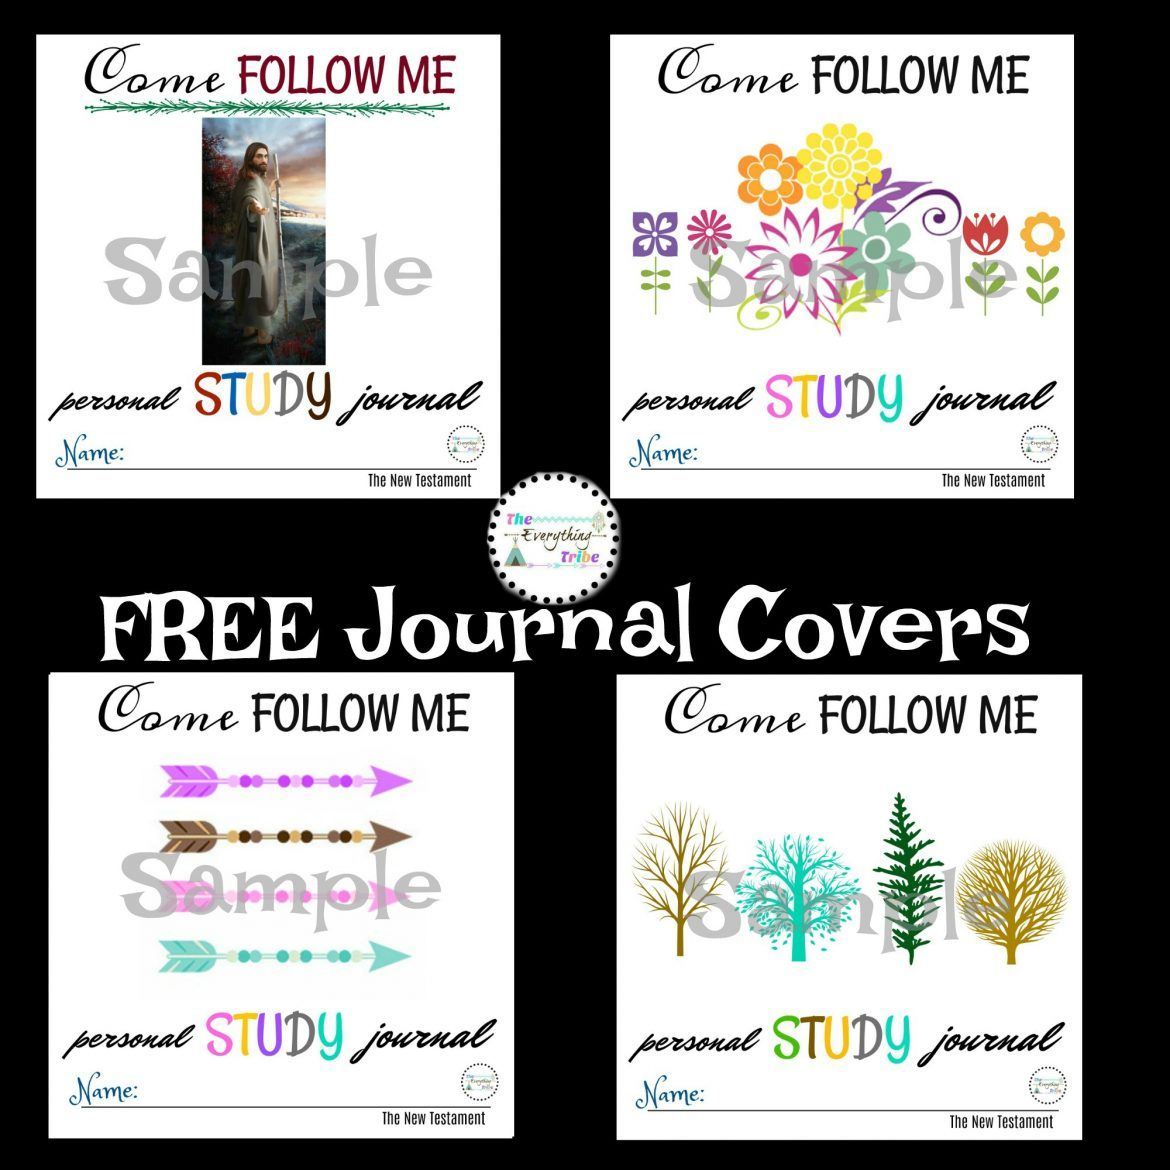 Come Follow Me Journal Covers With Images